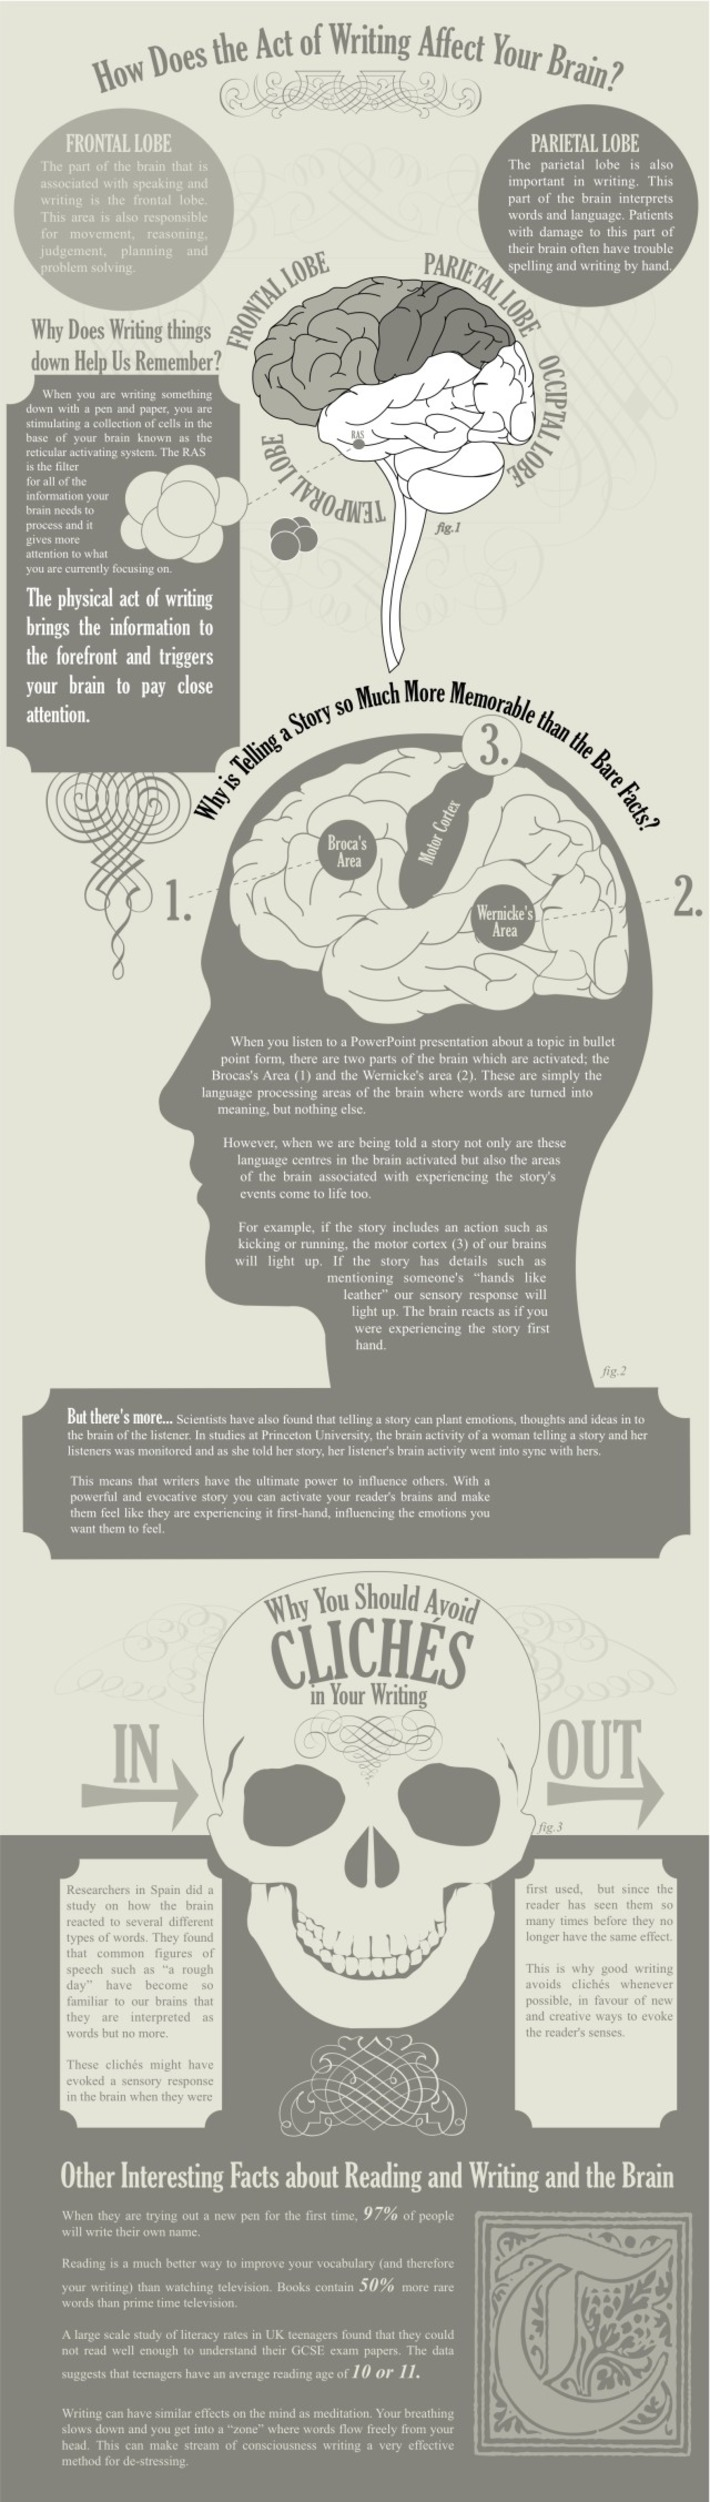 How Does Writing Affect Your Brain? | Knowledge Broker | Scoop.it